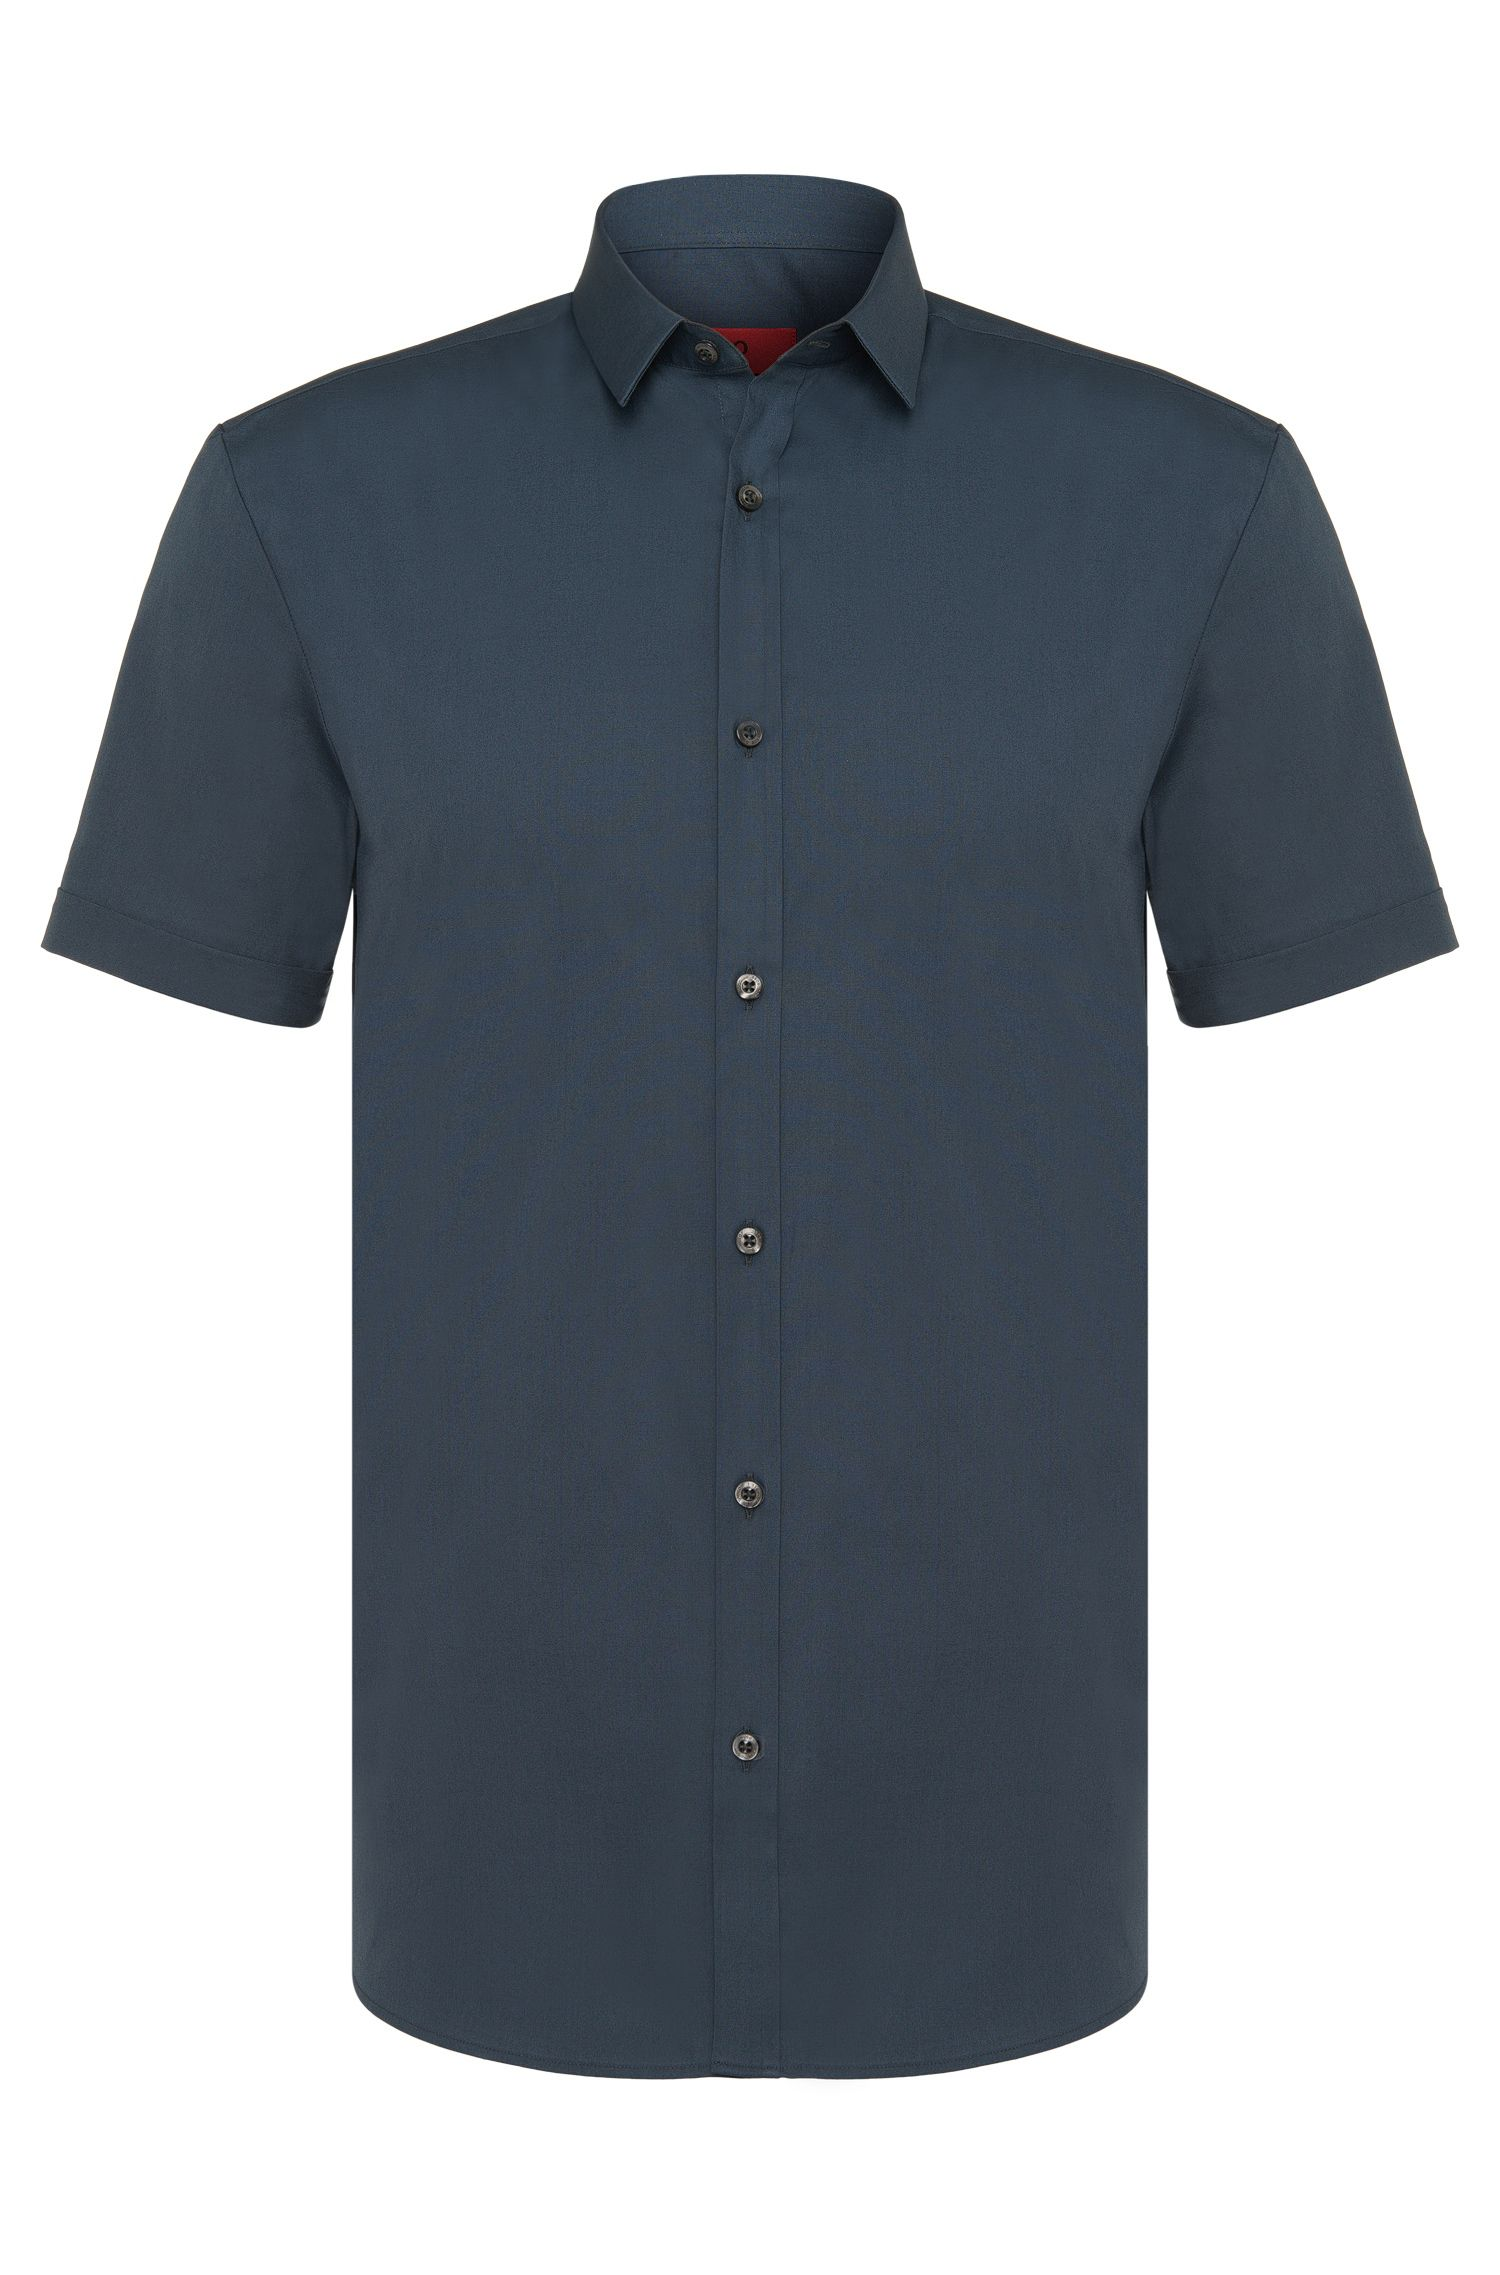 'Empson' | Slim Fit, Stretch Cotton Button Down Shirt